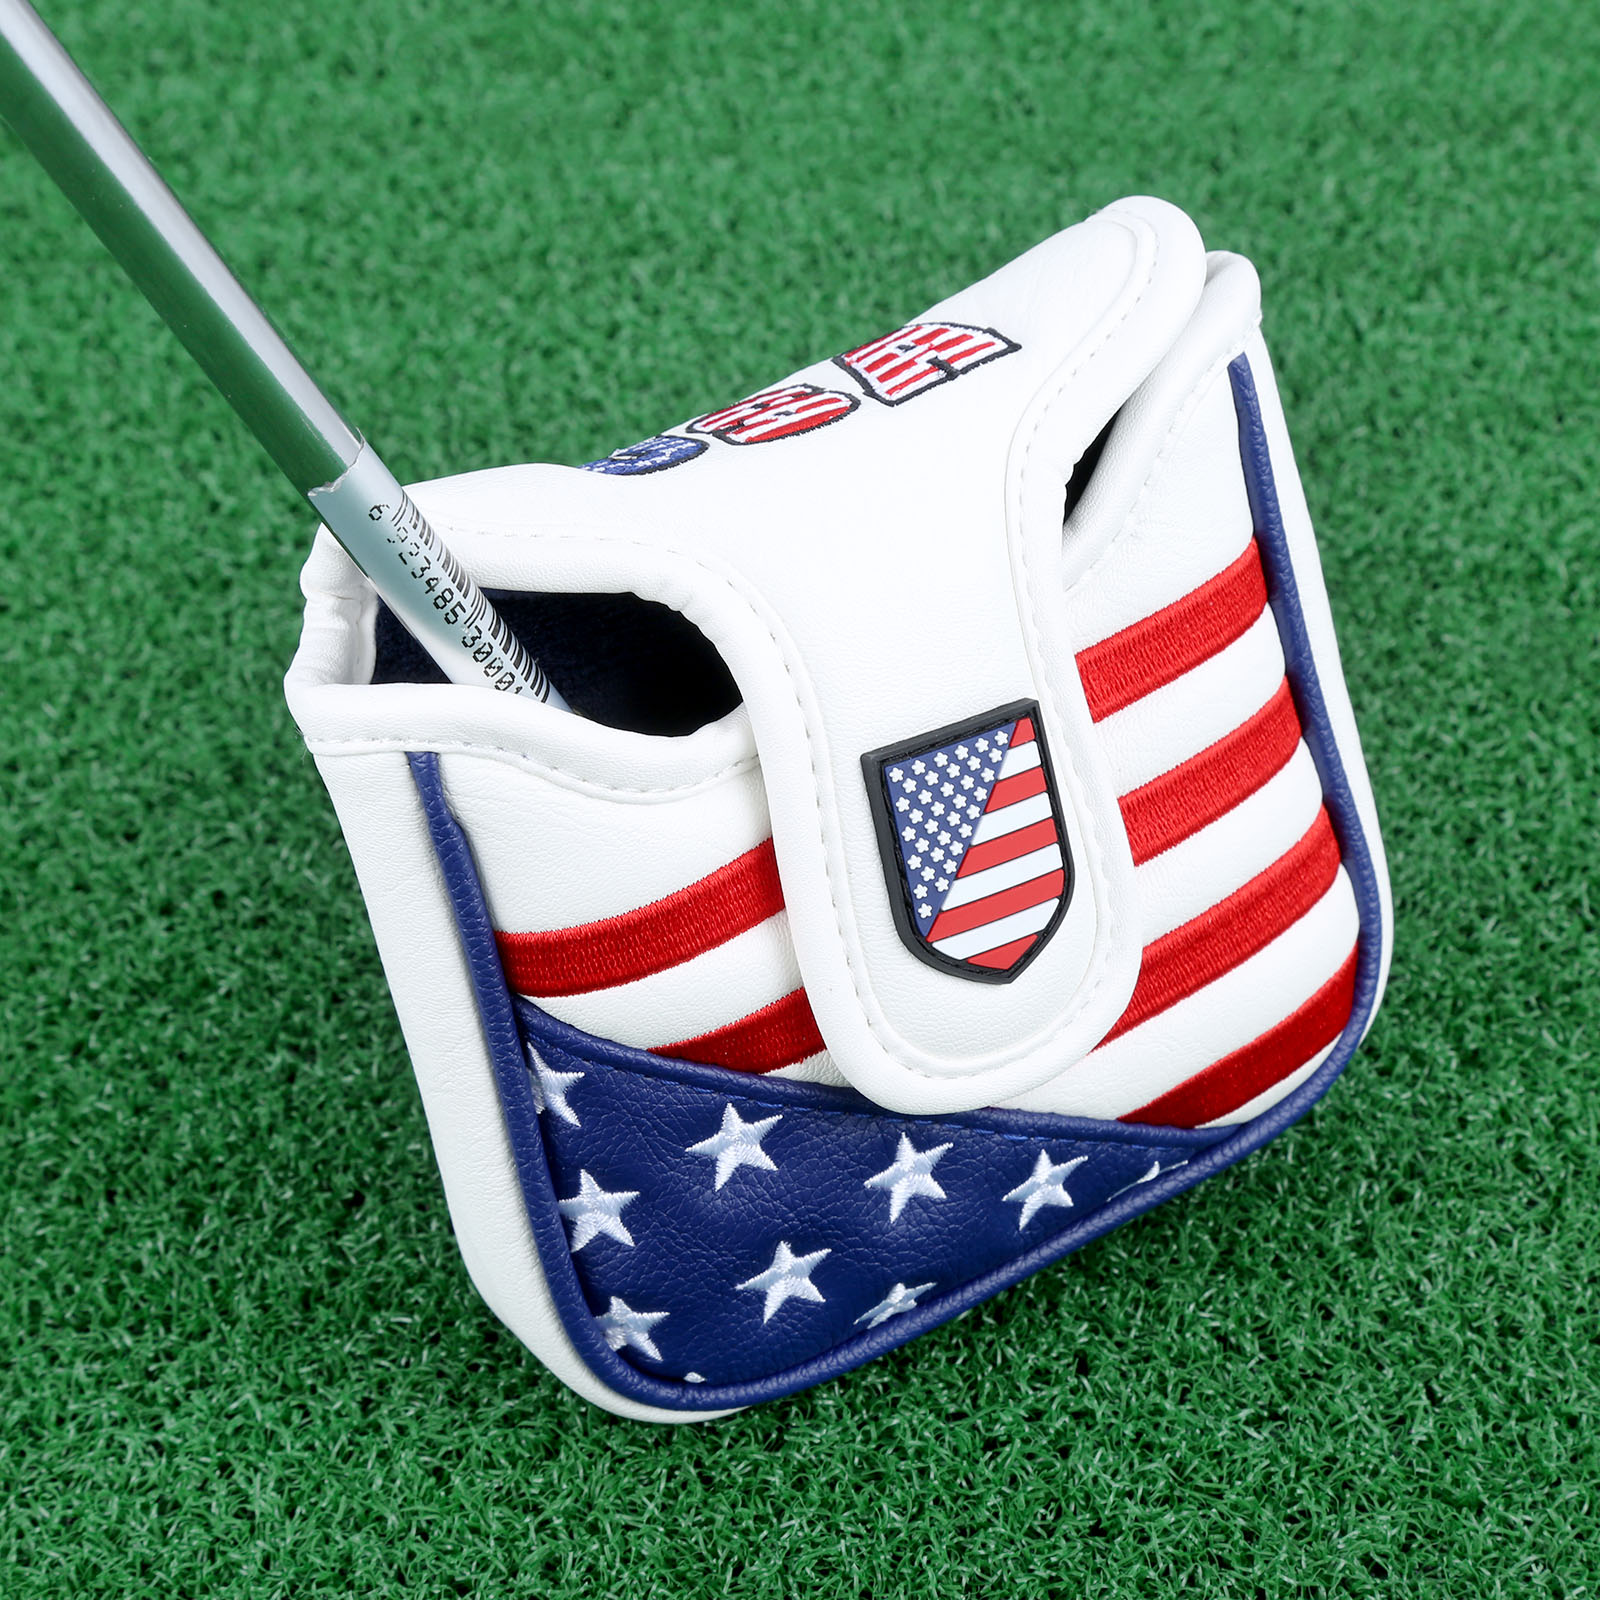 1 Pc Magnetic Closure Golf Mallet Putter Covers Headcover PU Leather Flag Style Square Golf Club Head Cover Headcovers